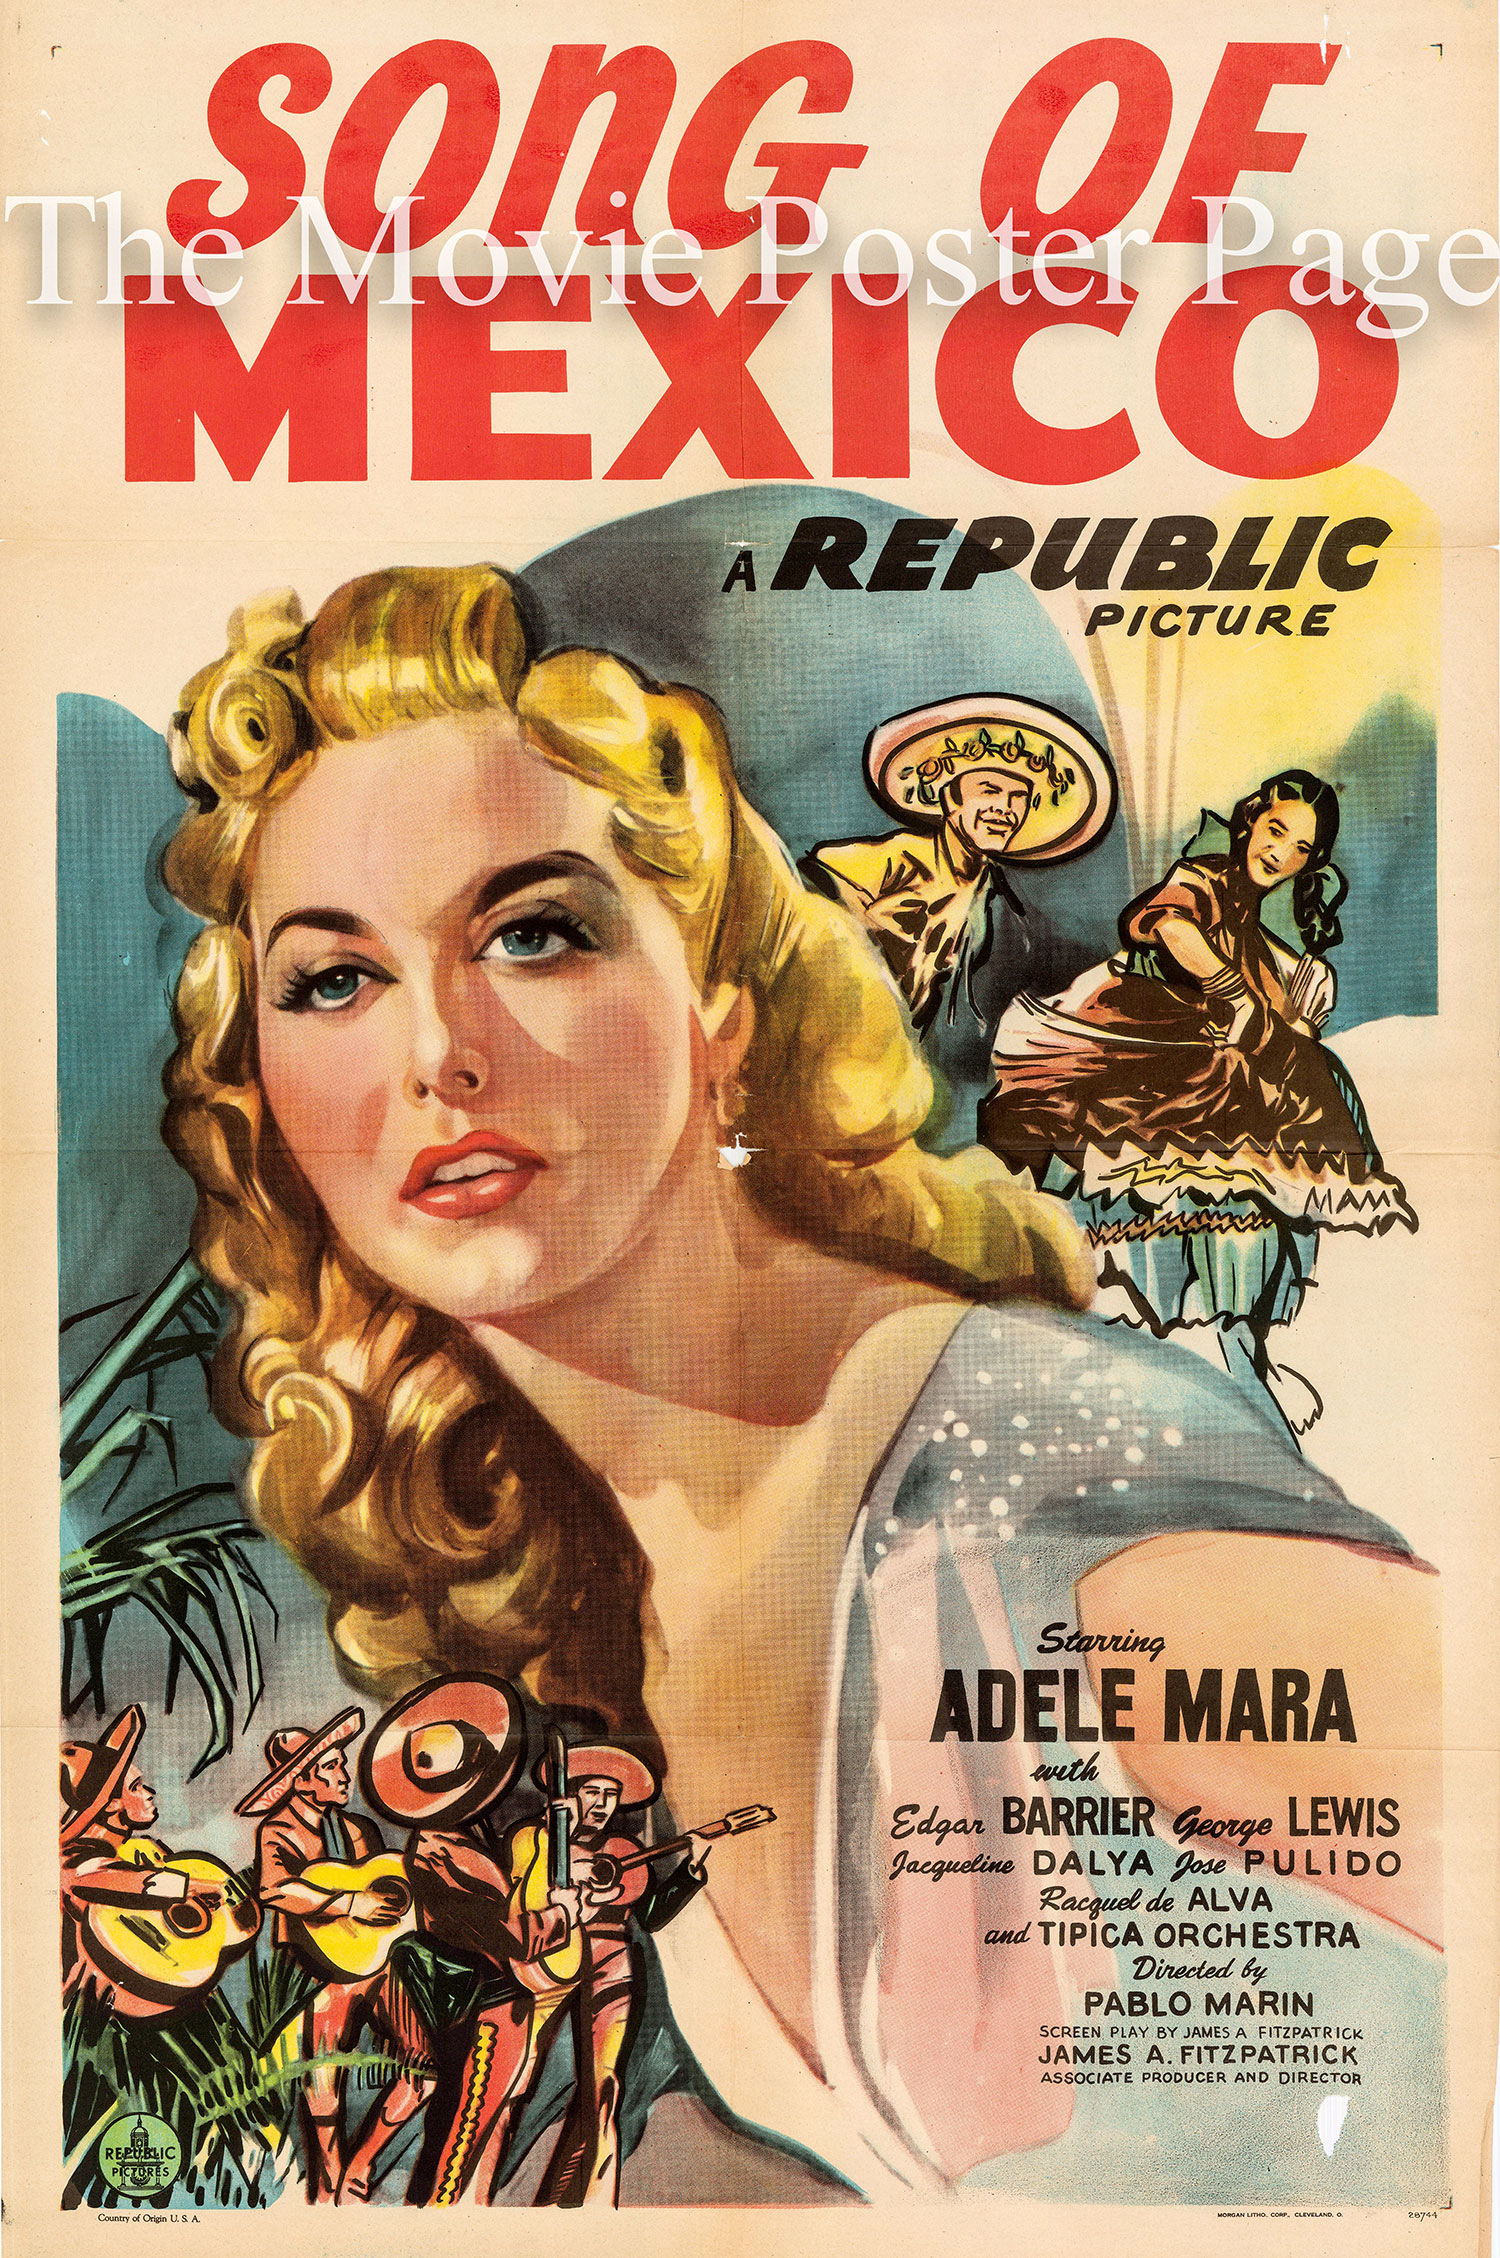 Pictured is a US one-sheet promotional poster for the 1945 James A. FitzPatrack film Song of Mexico starring Adele Mara.